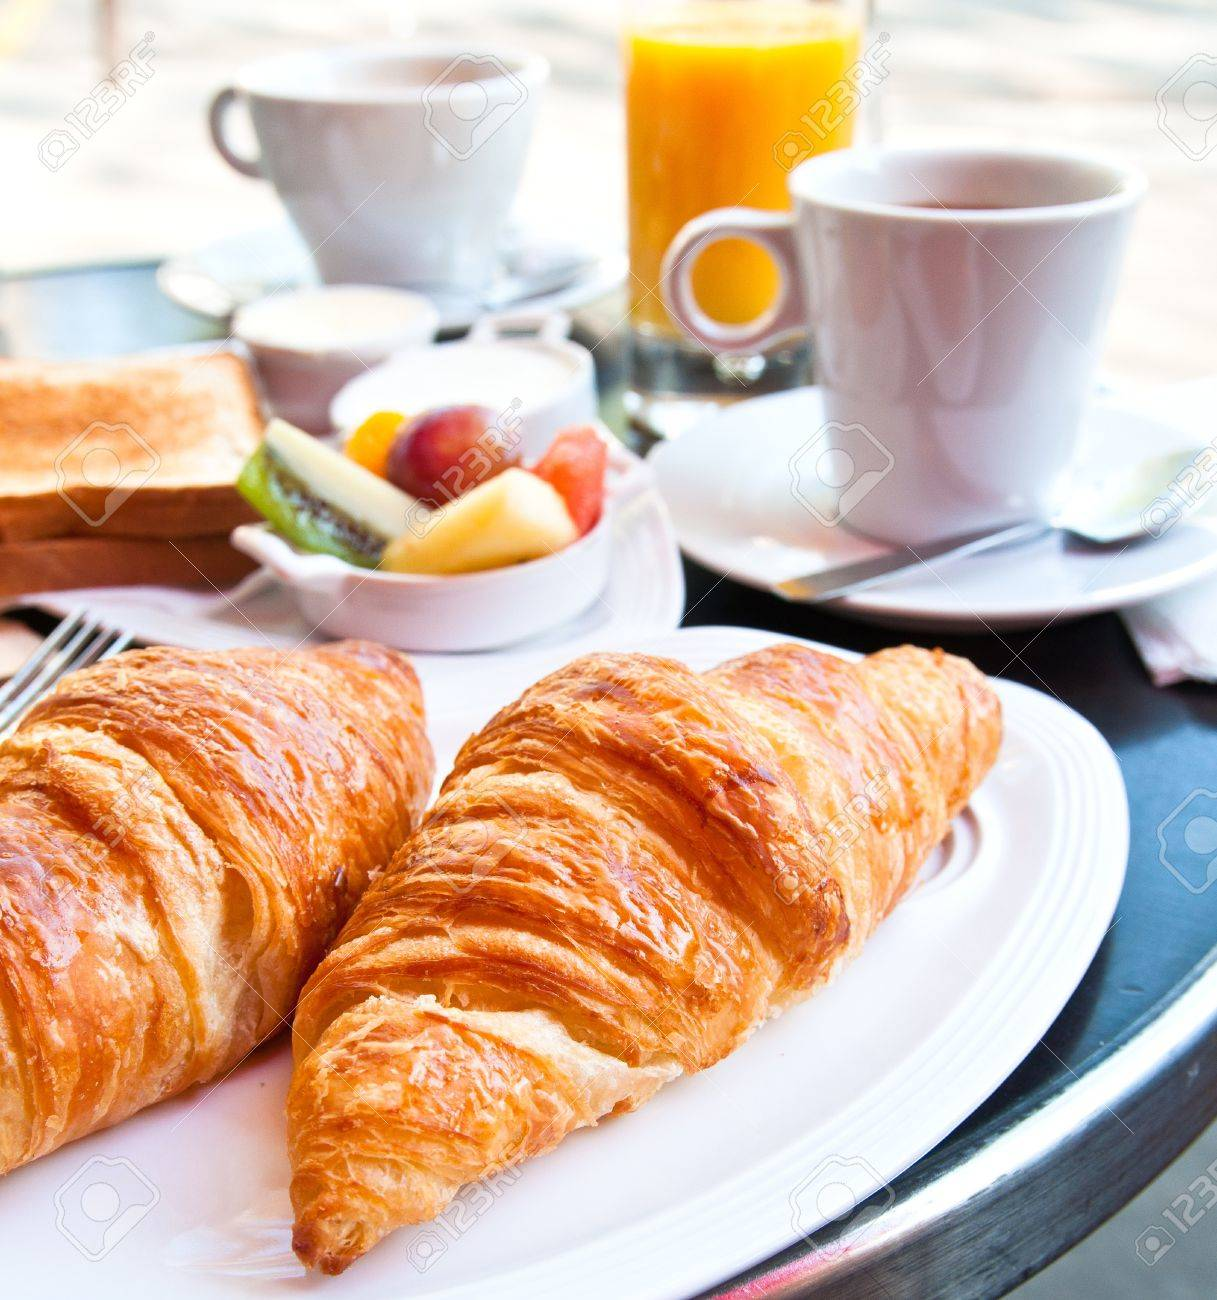 Breakfast with coffee and croissants in a basket on table Stock Photo - 9355395